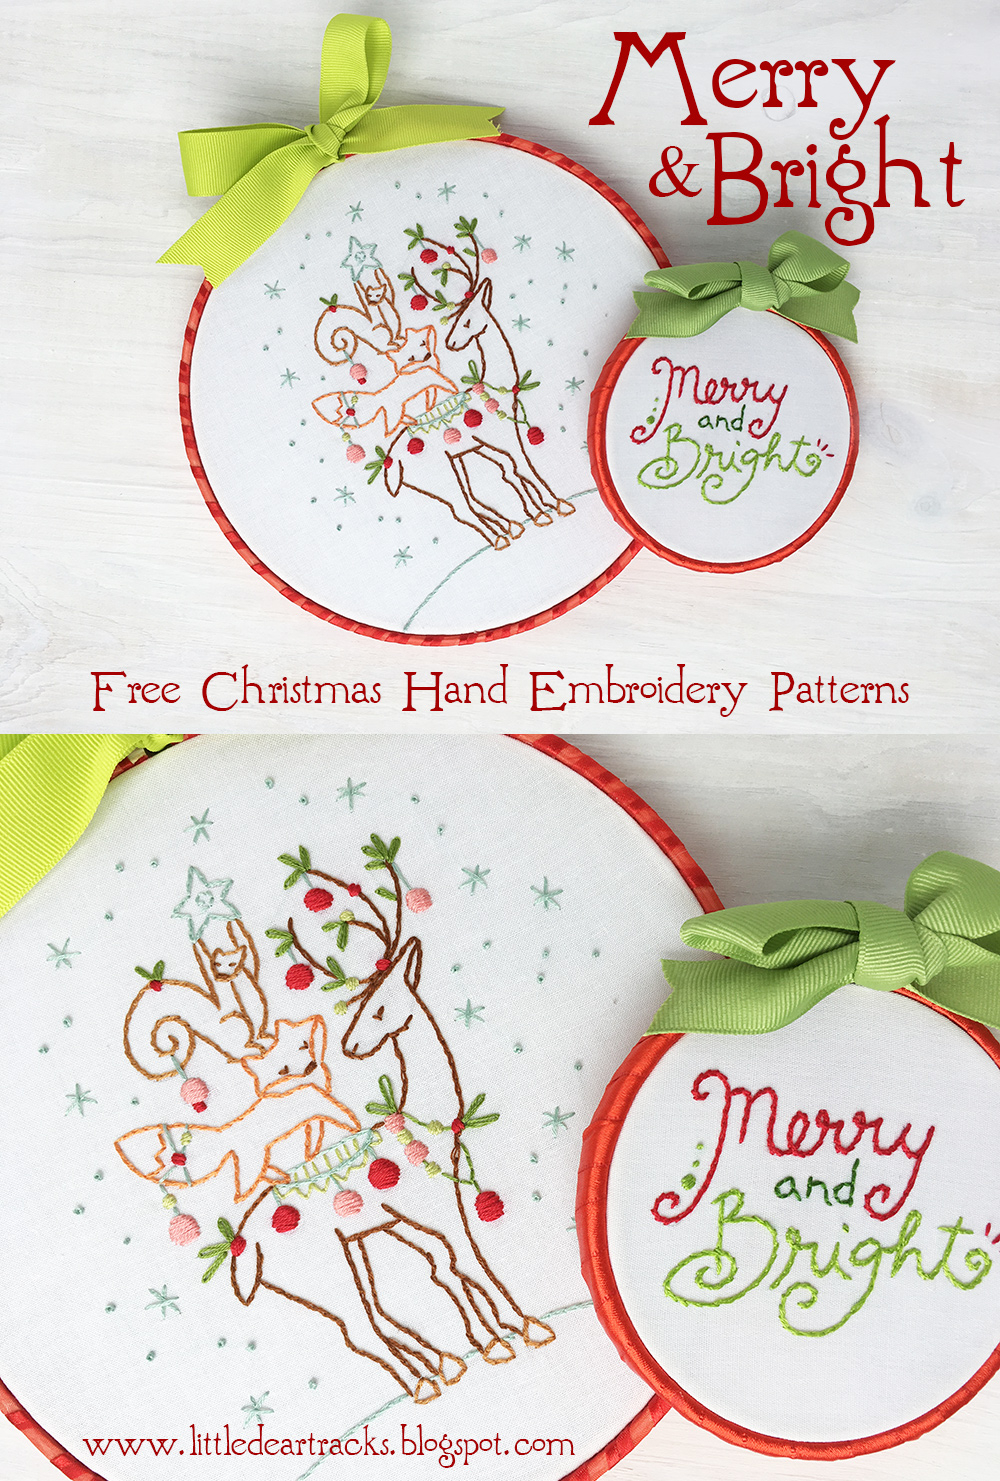 Embroidery Christmas Patterns Little Dear Tracks Free Christmas Embroidery Patterns